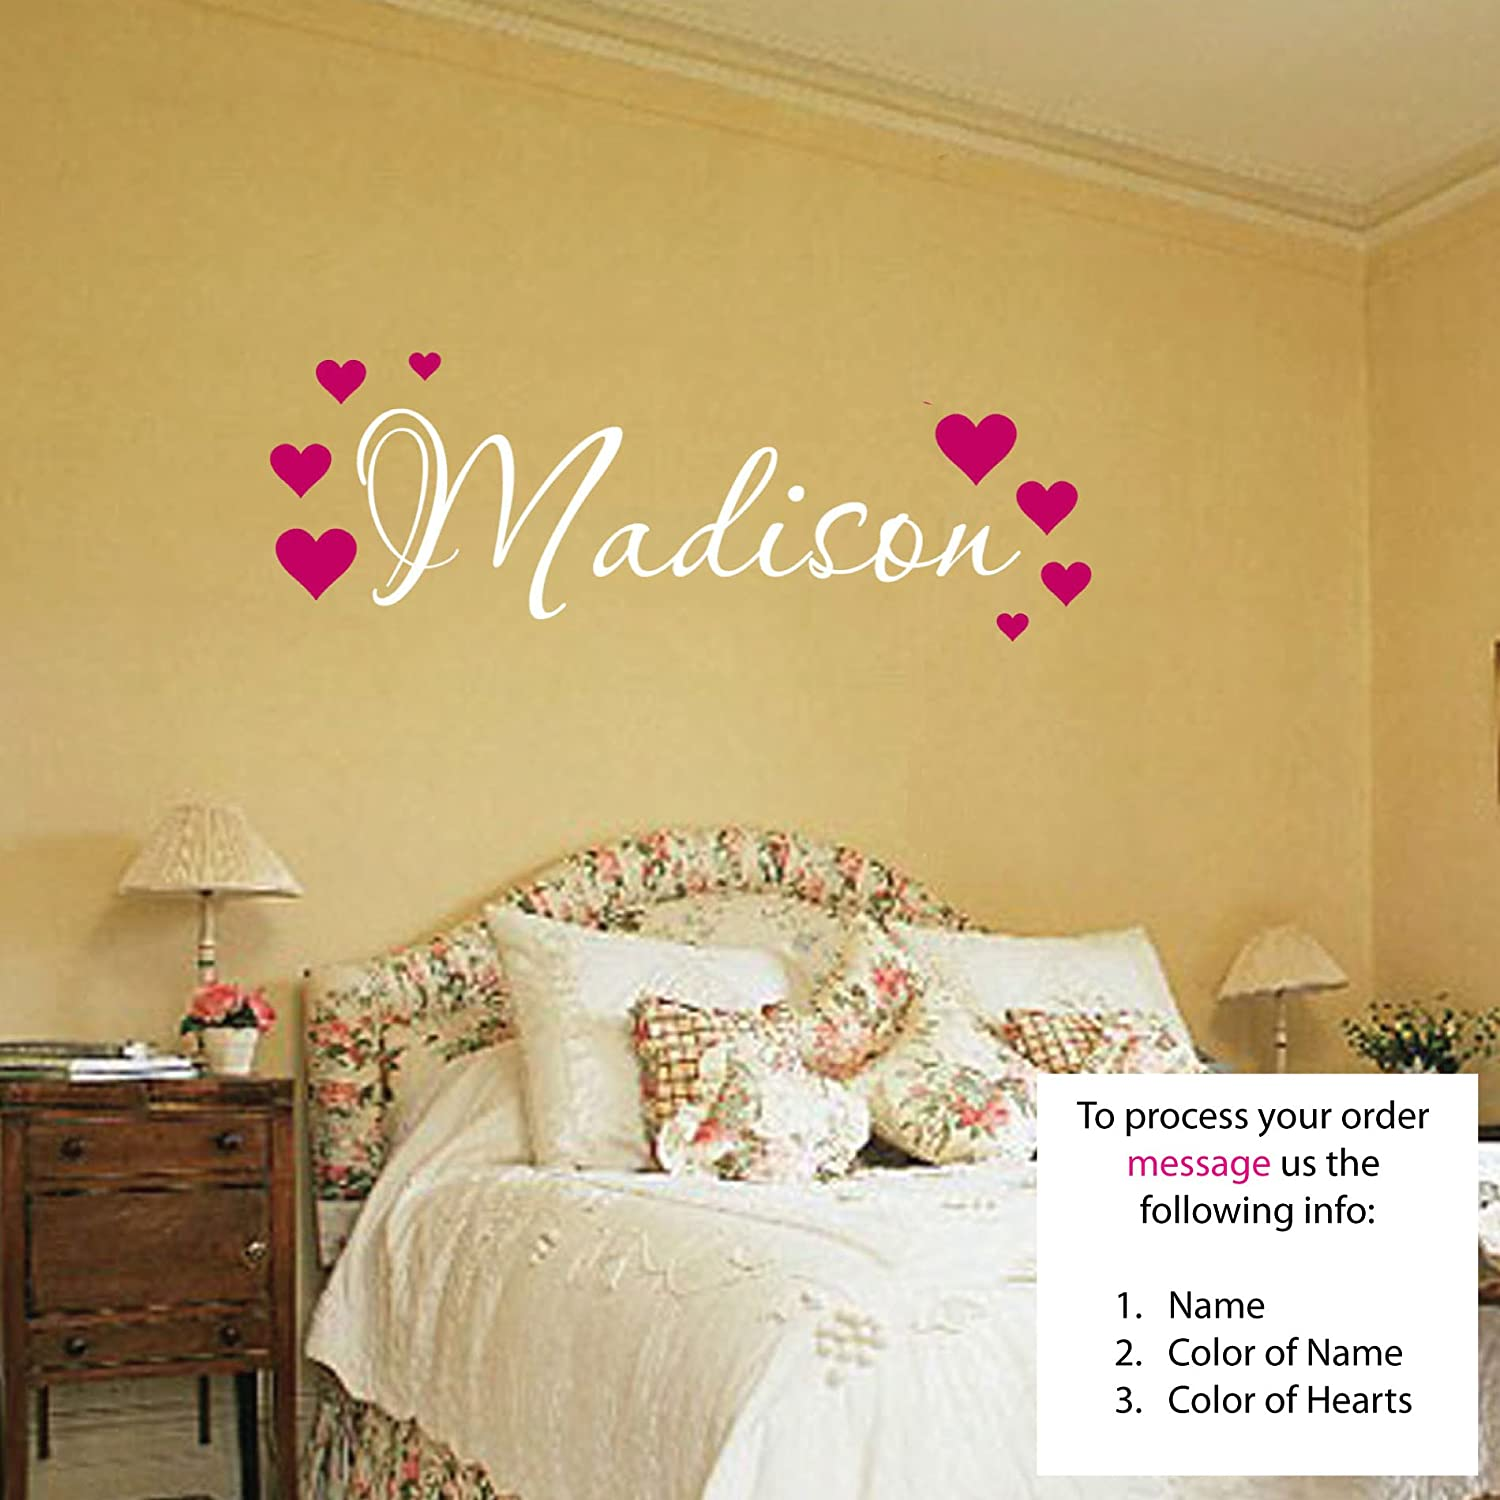 Amazon.com: Madison Wall Decal Childrens Personalized Name ...